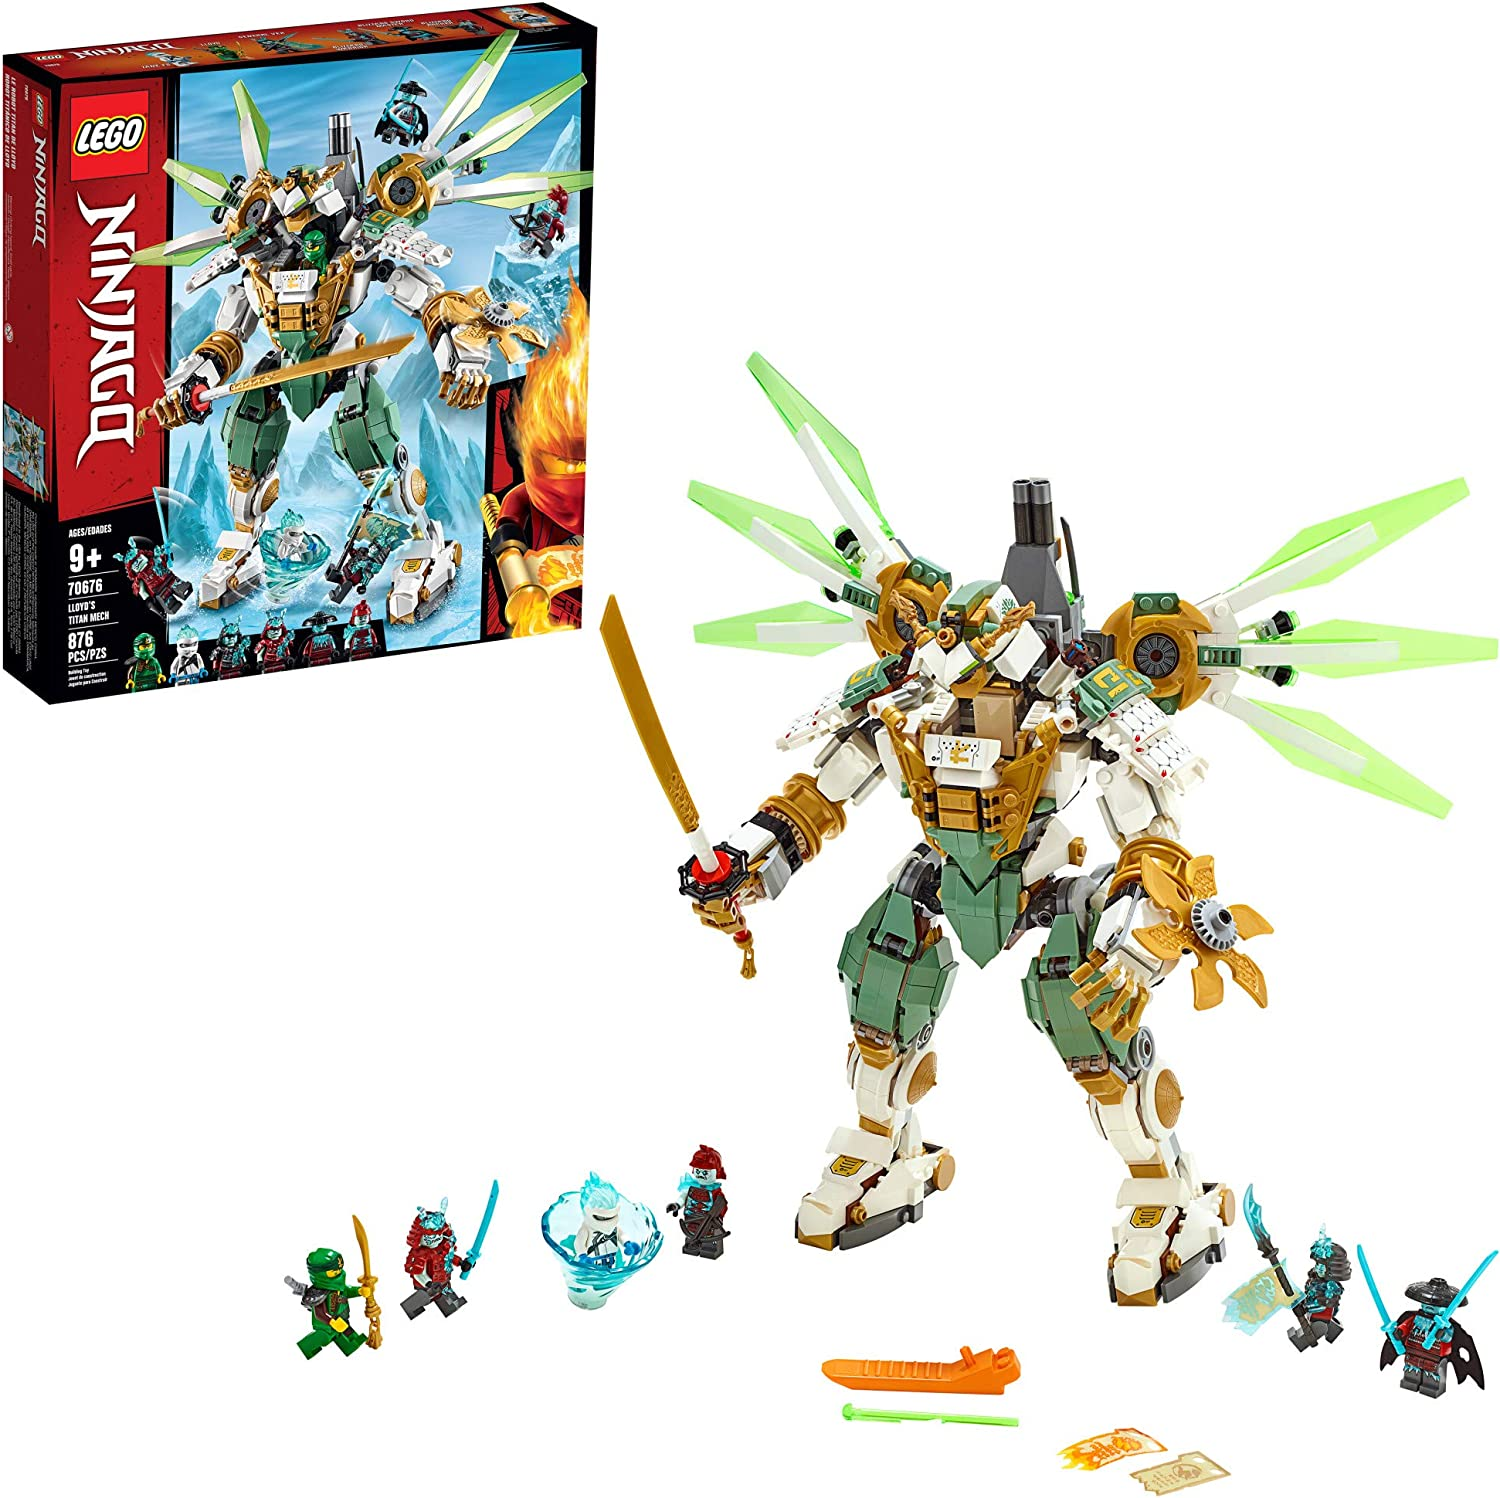 LEGO NINJAGO Lloyds Titan Mech 70676 Ninja Toy Building Kit with Ninja Minifigures for Creative Play, Fun Action Toy includes NINJAGO characters ...